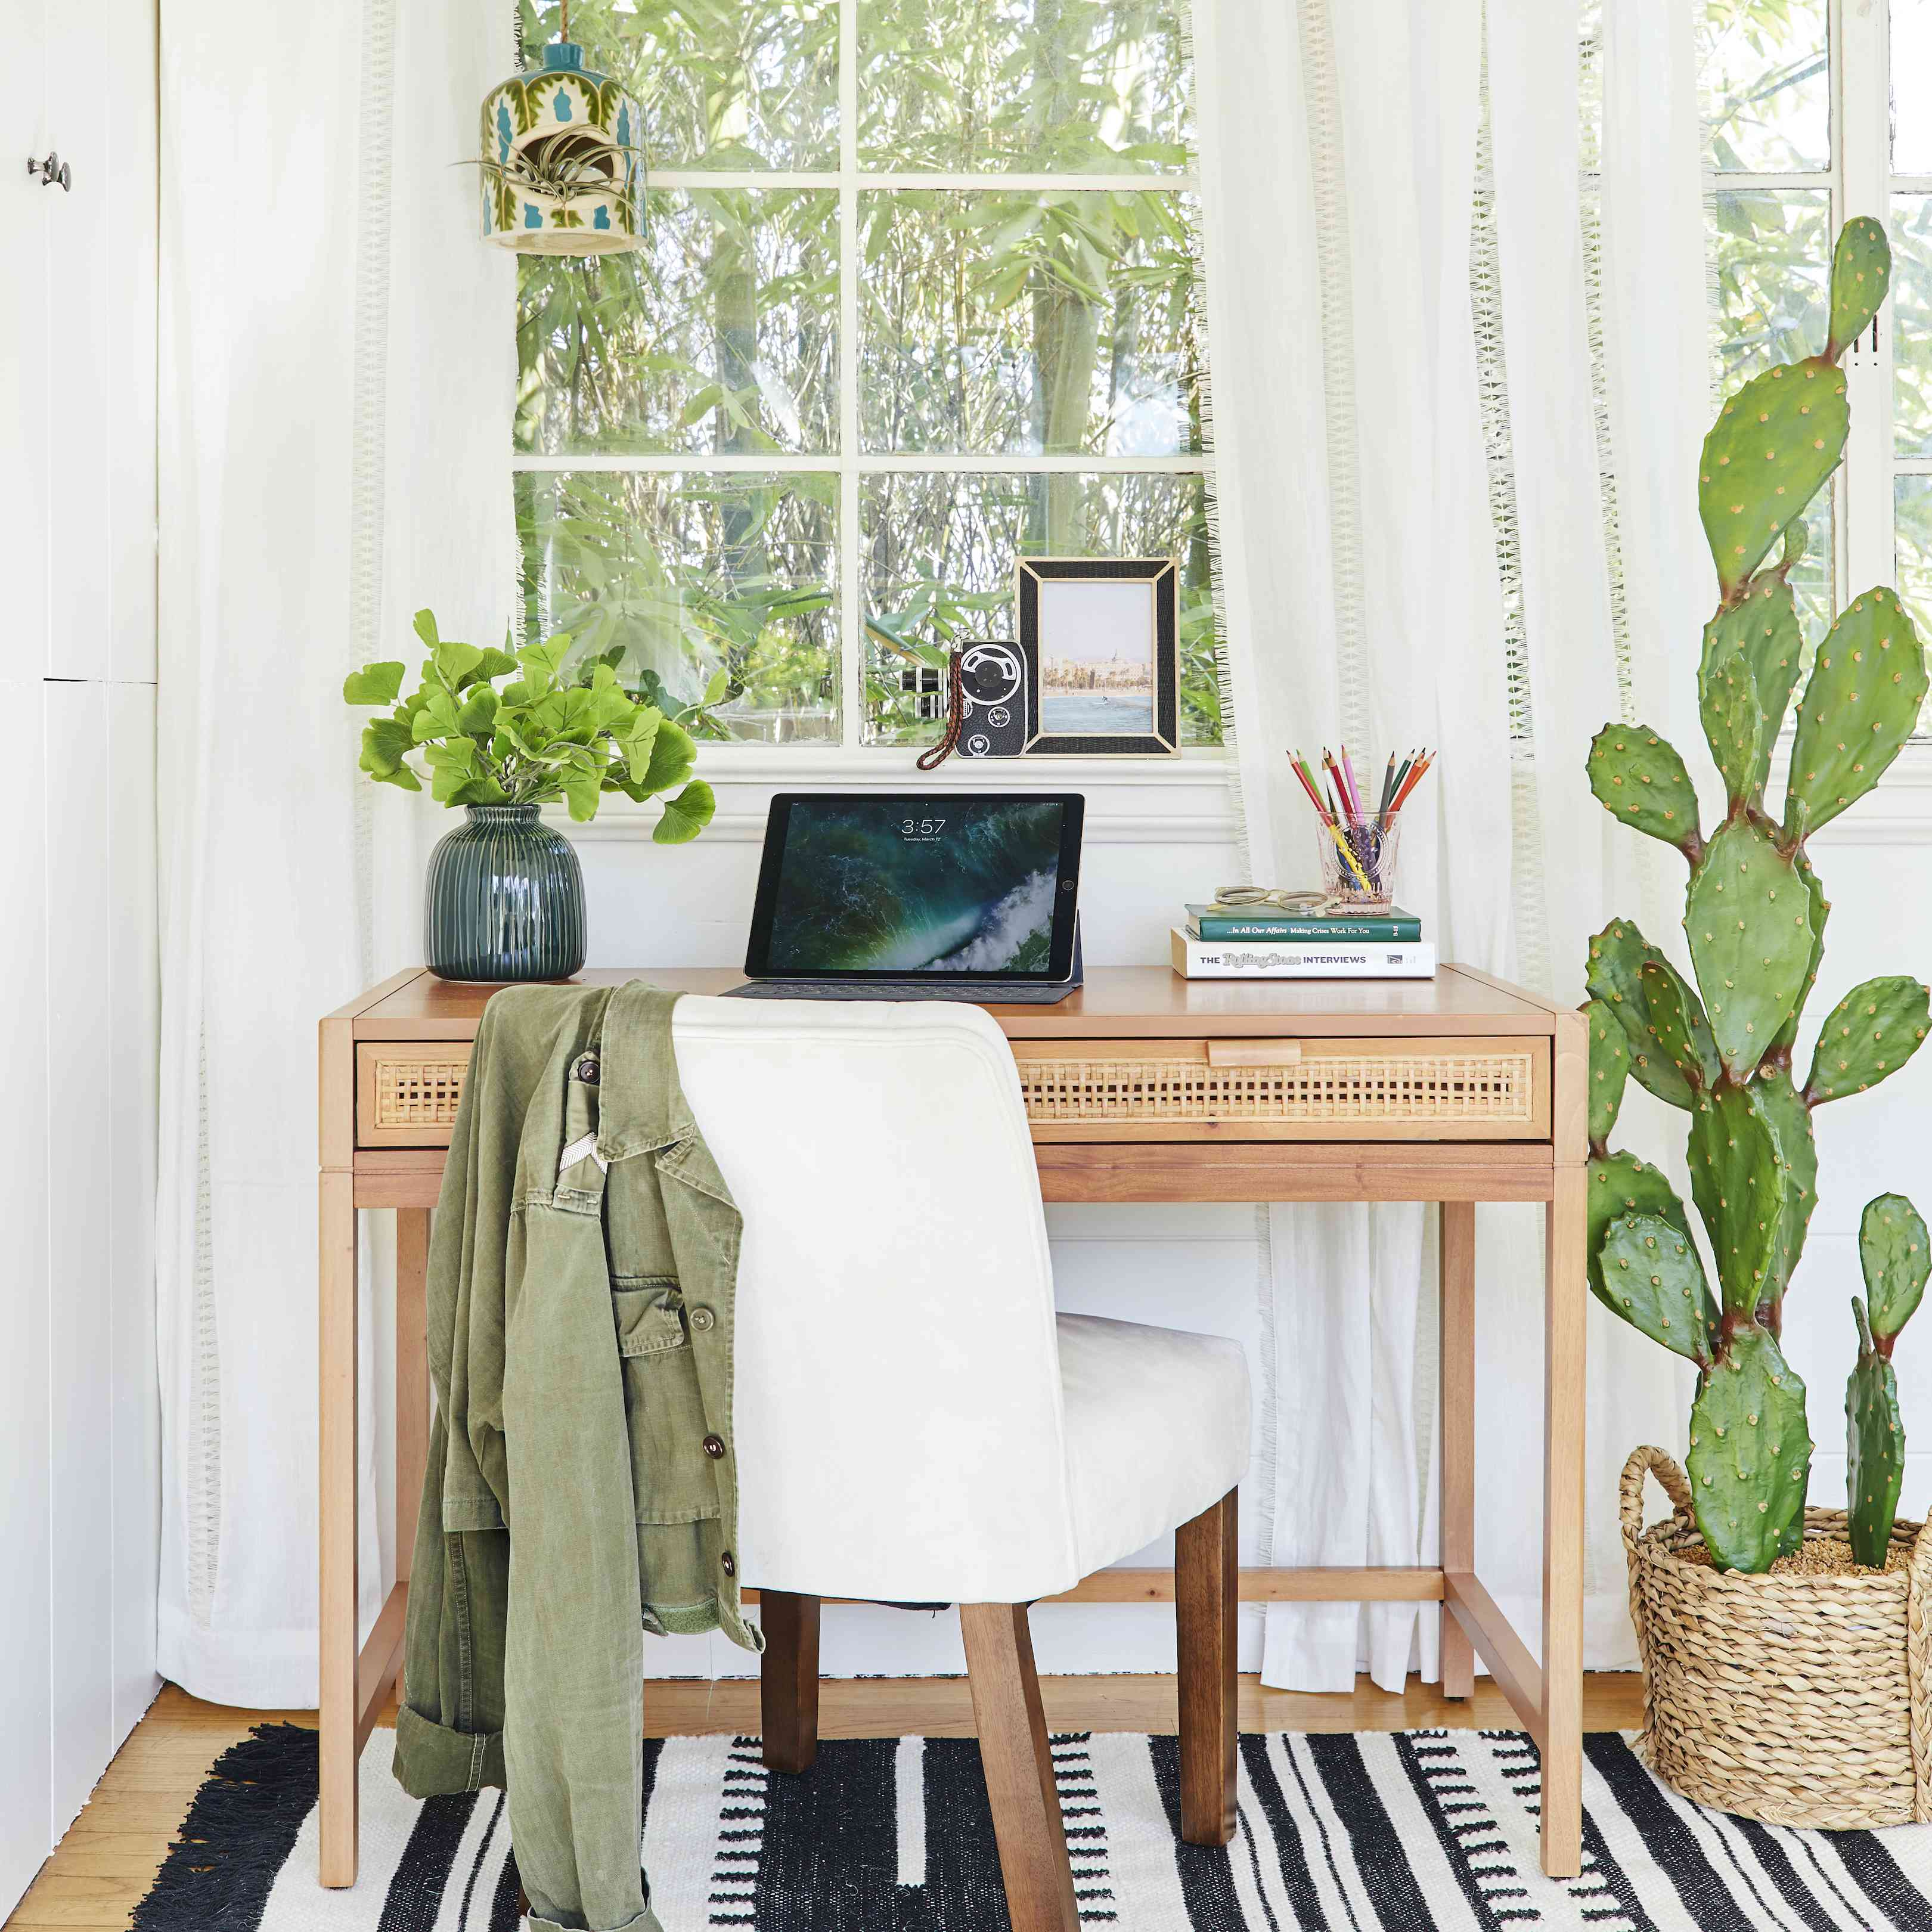 Apartment office nook with open tablet